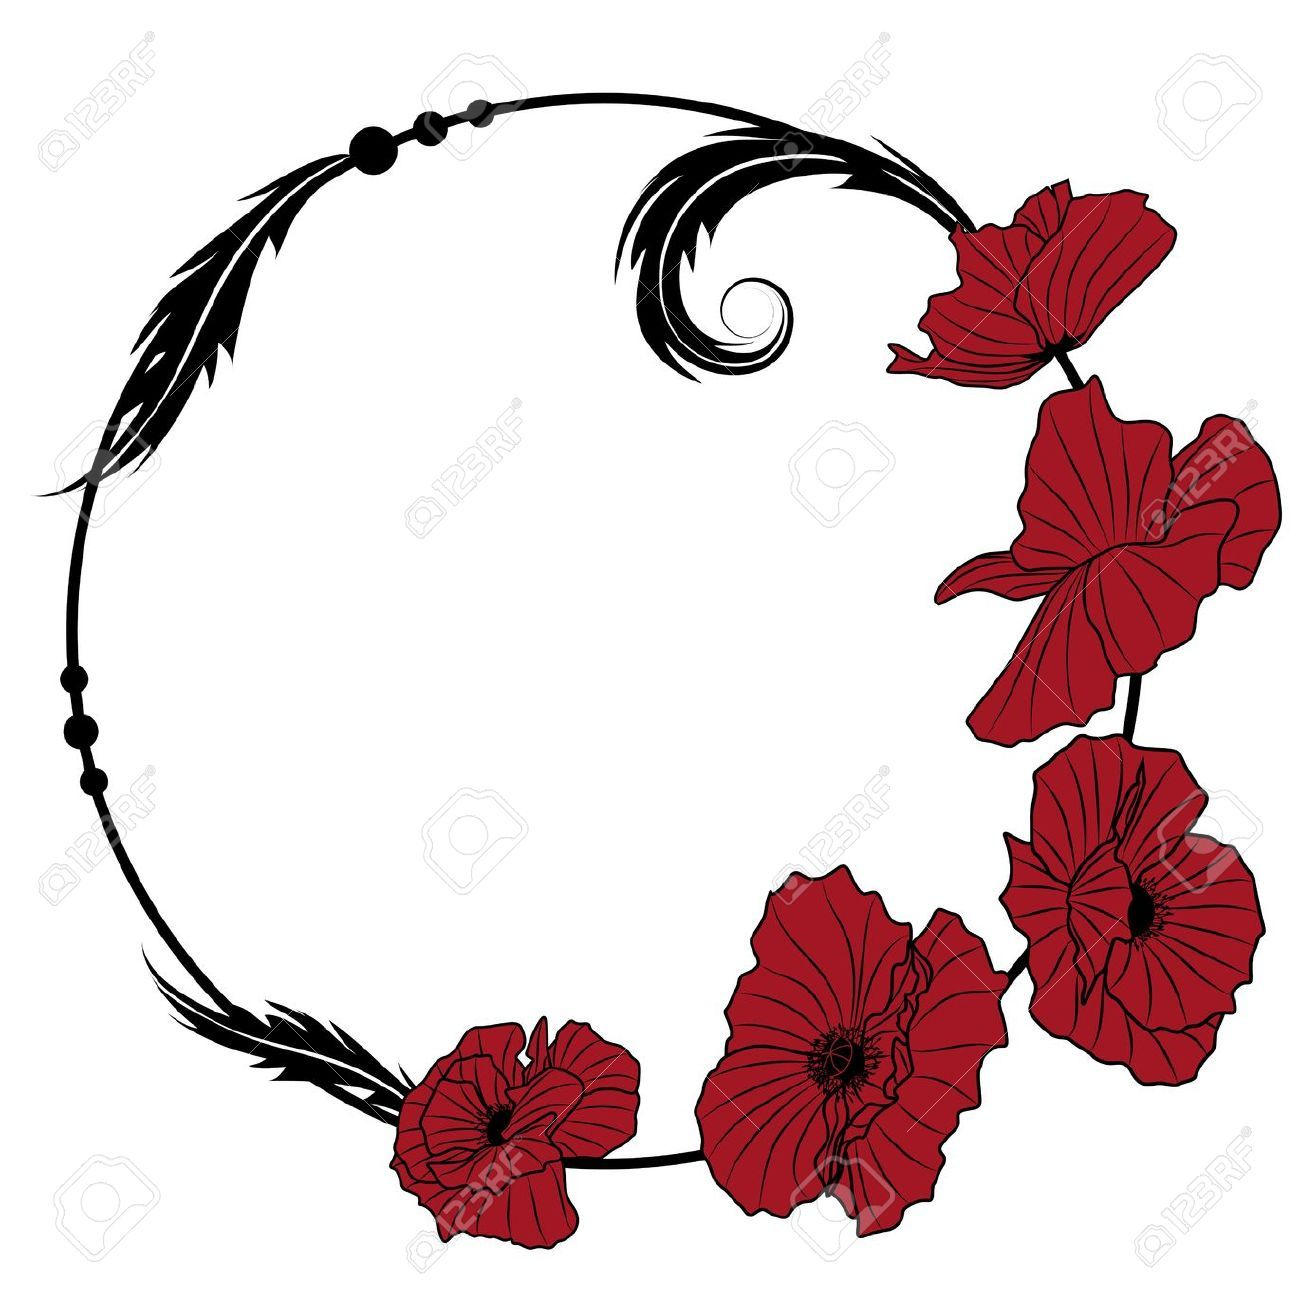 Art Nouveau Flower Tattoo: 8923632-vector-frame-with-flowers-of-red-poppy-Stock